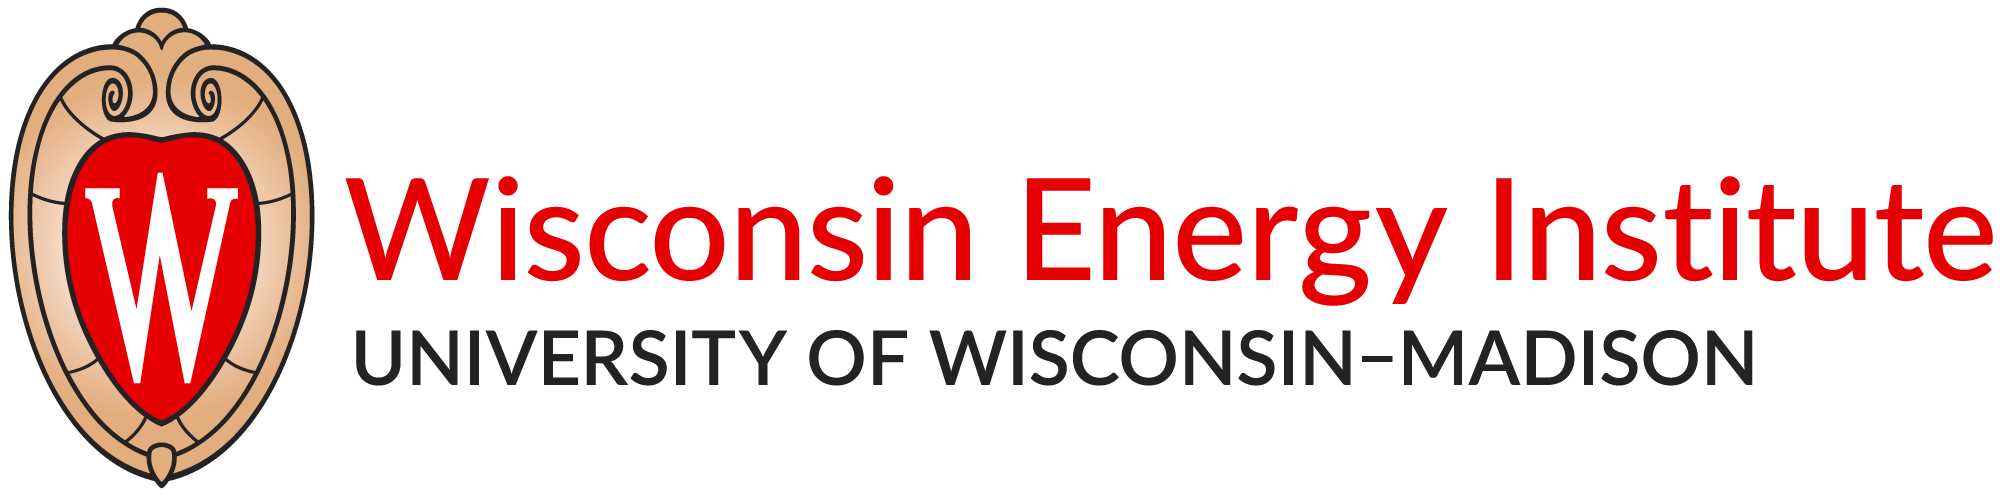 Logo for the Wisconsin Energy Institute